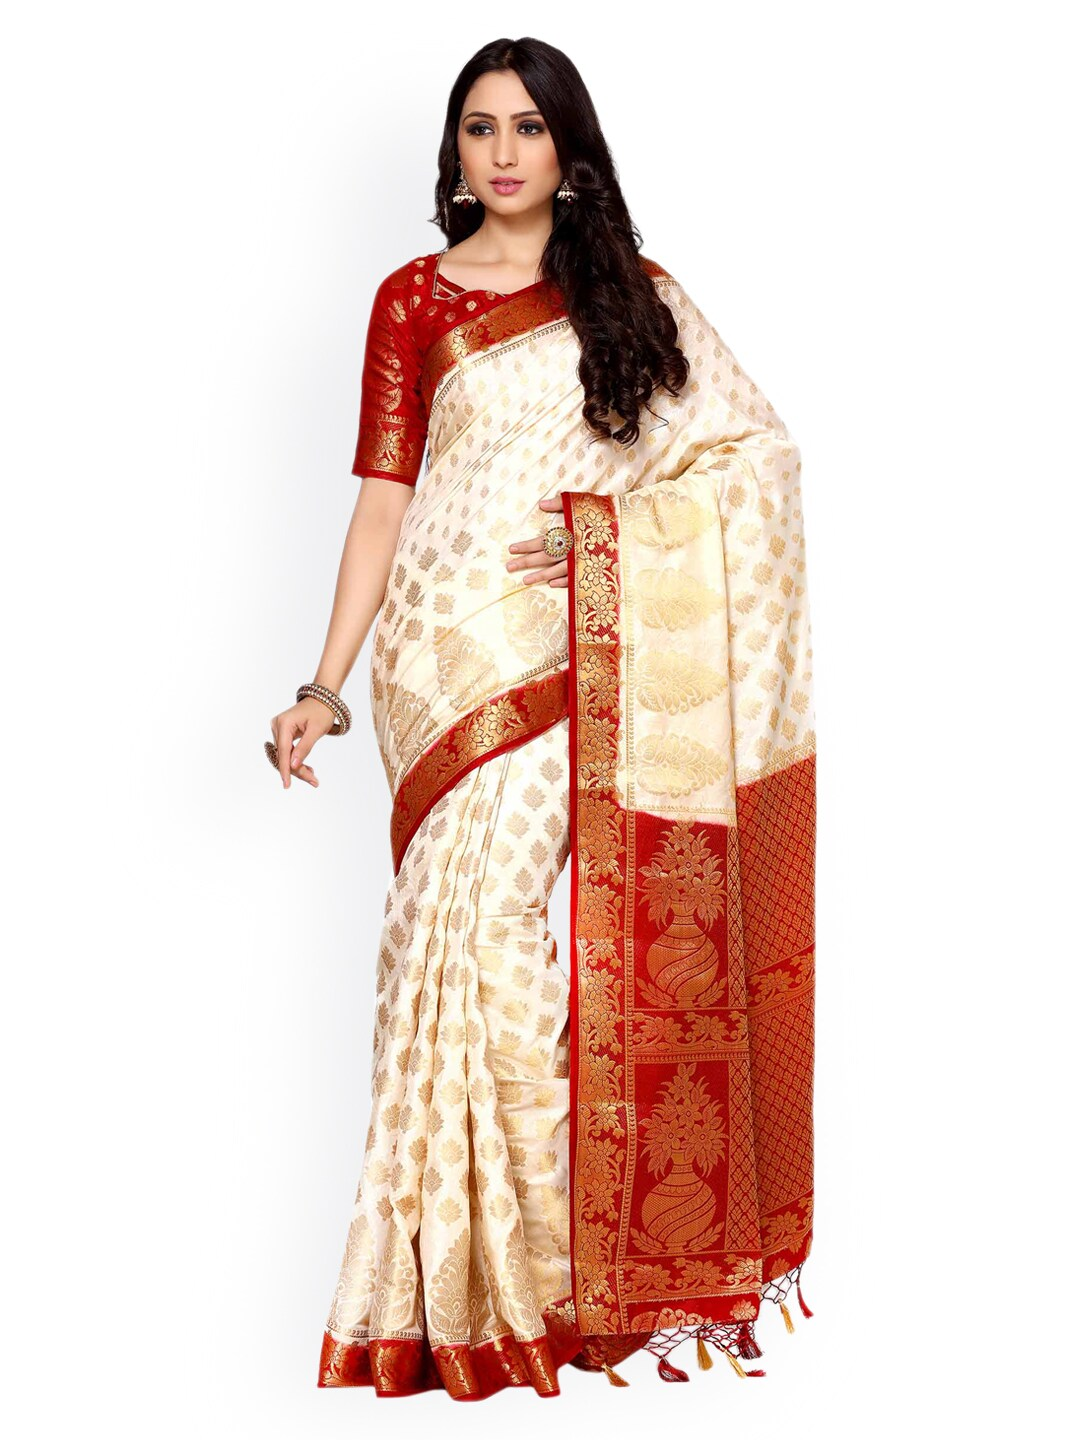 441b23b7c64 Zari Saree - Buy Sarees with Zari borders Online - Myntra